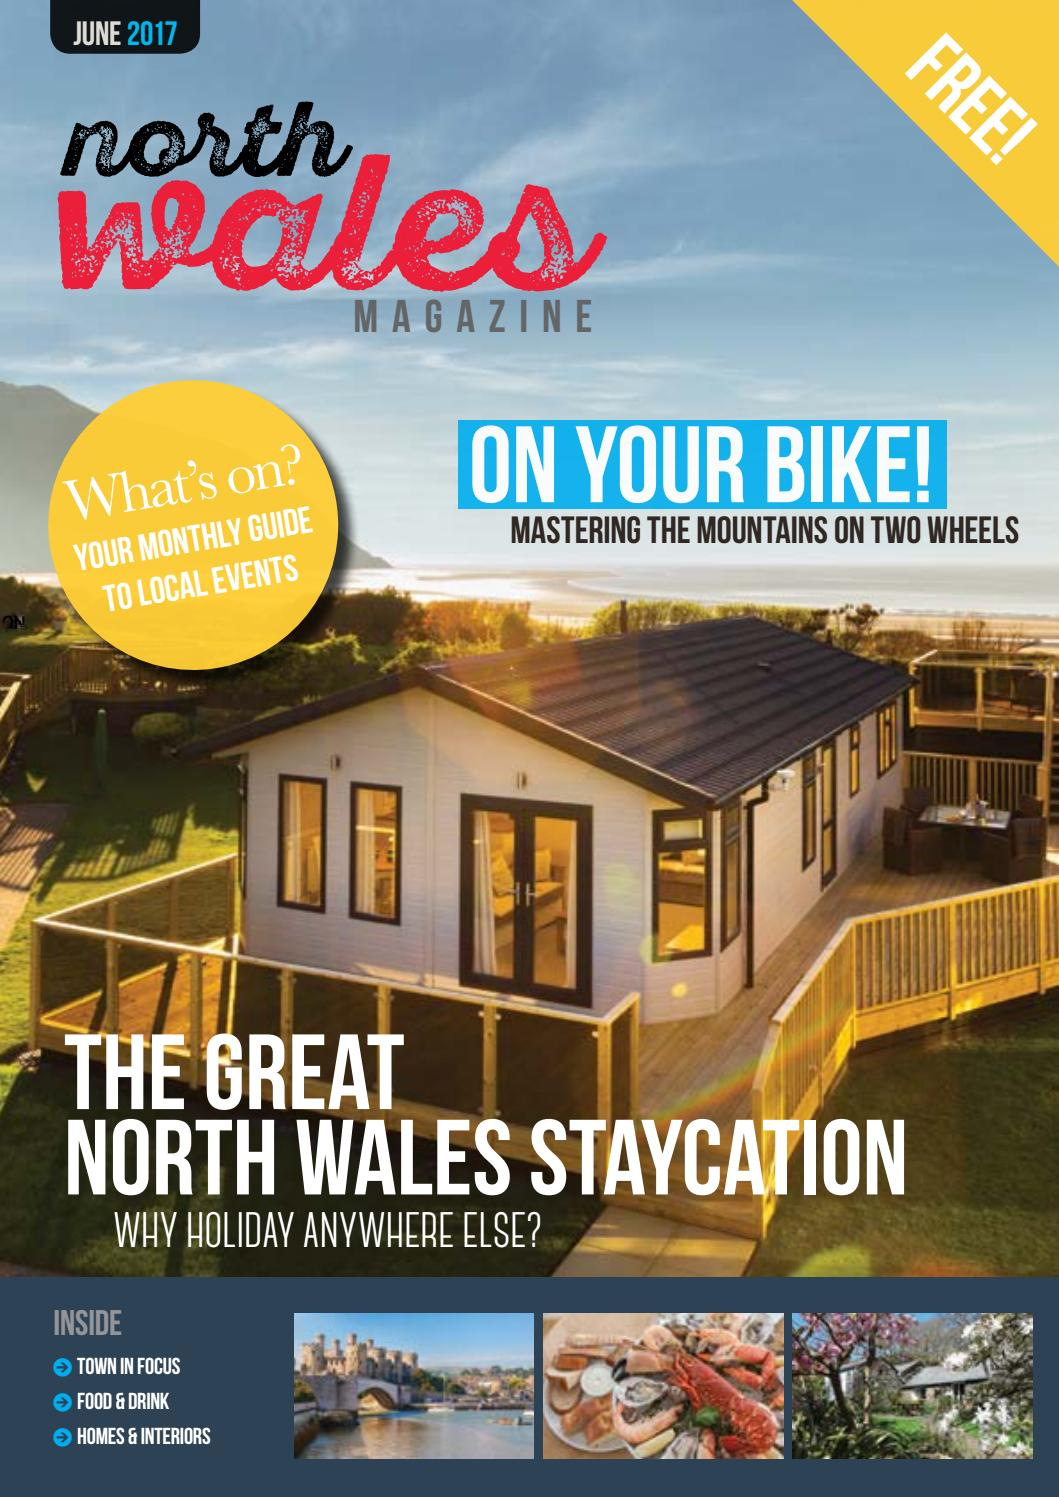 Küchen In U Form Bilder North Wales Magazine June 2017 By North Wales Magazine Issuu